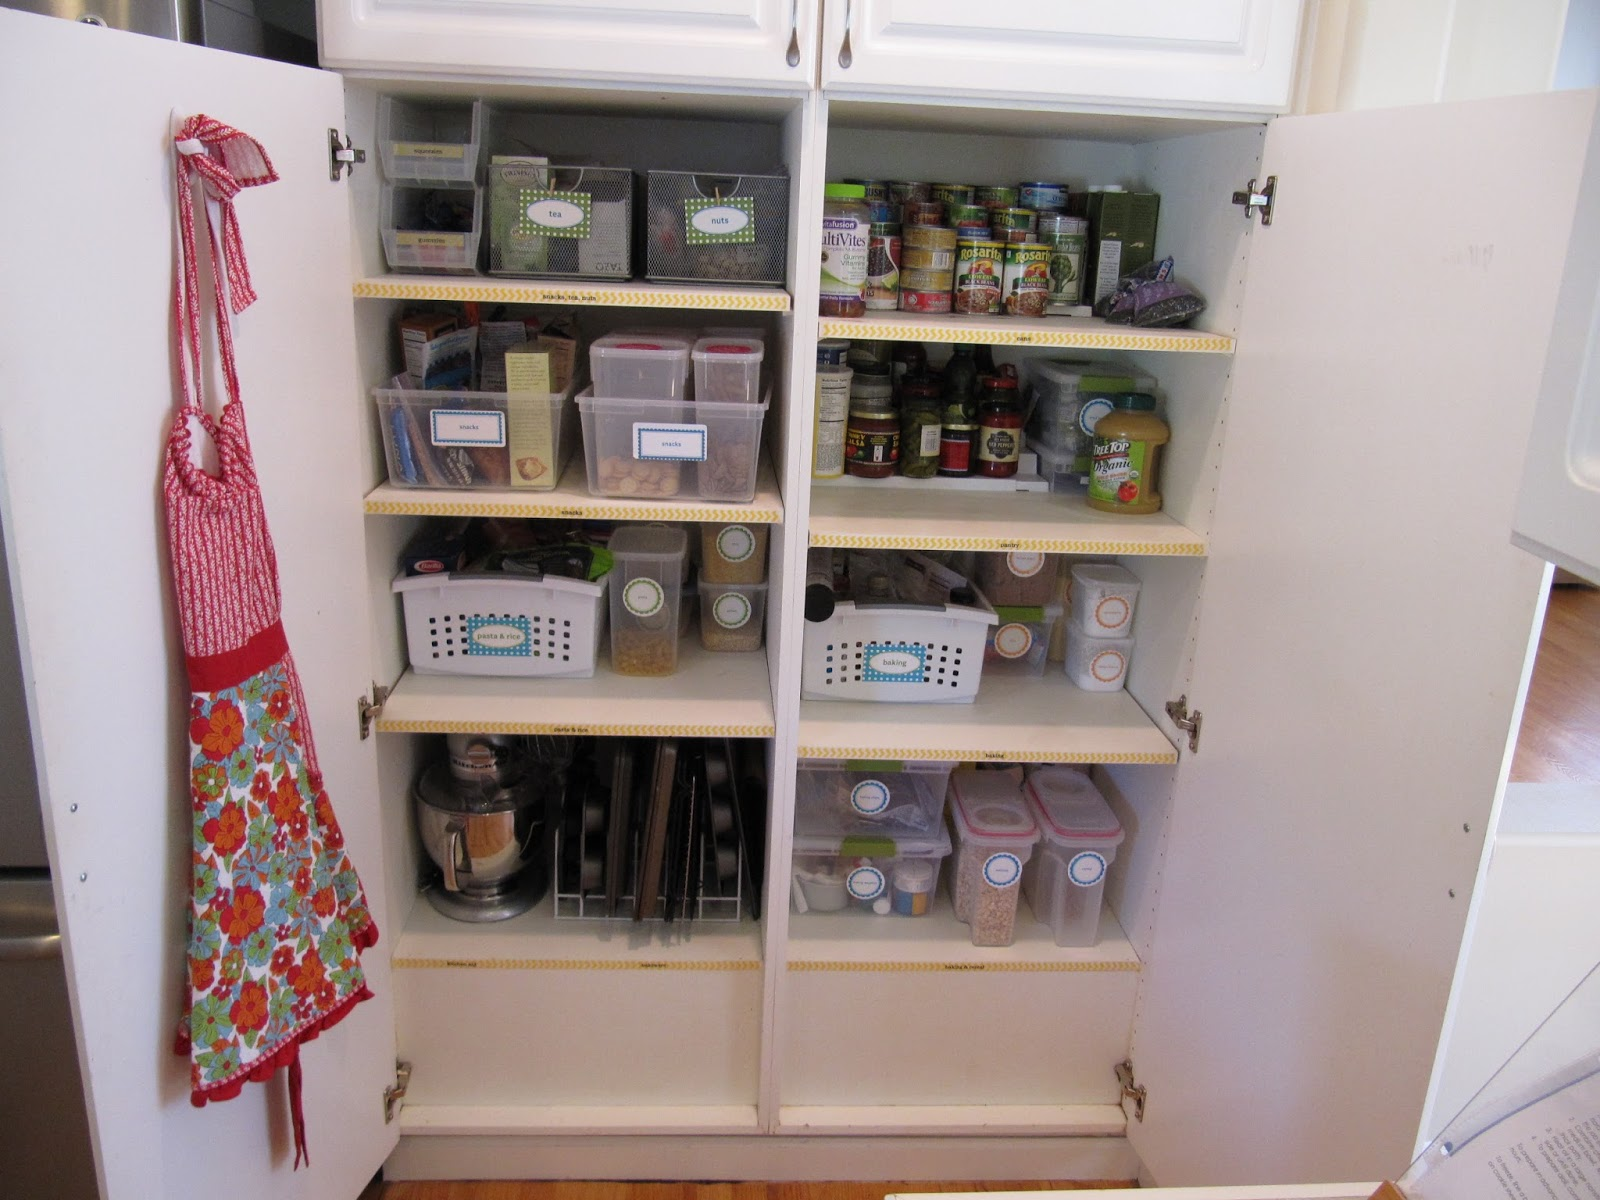 Organization For Kitchen Everyday Organizing An Organized Kitchen The Pantry Part Iii